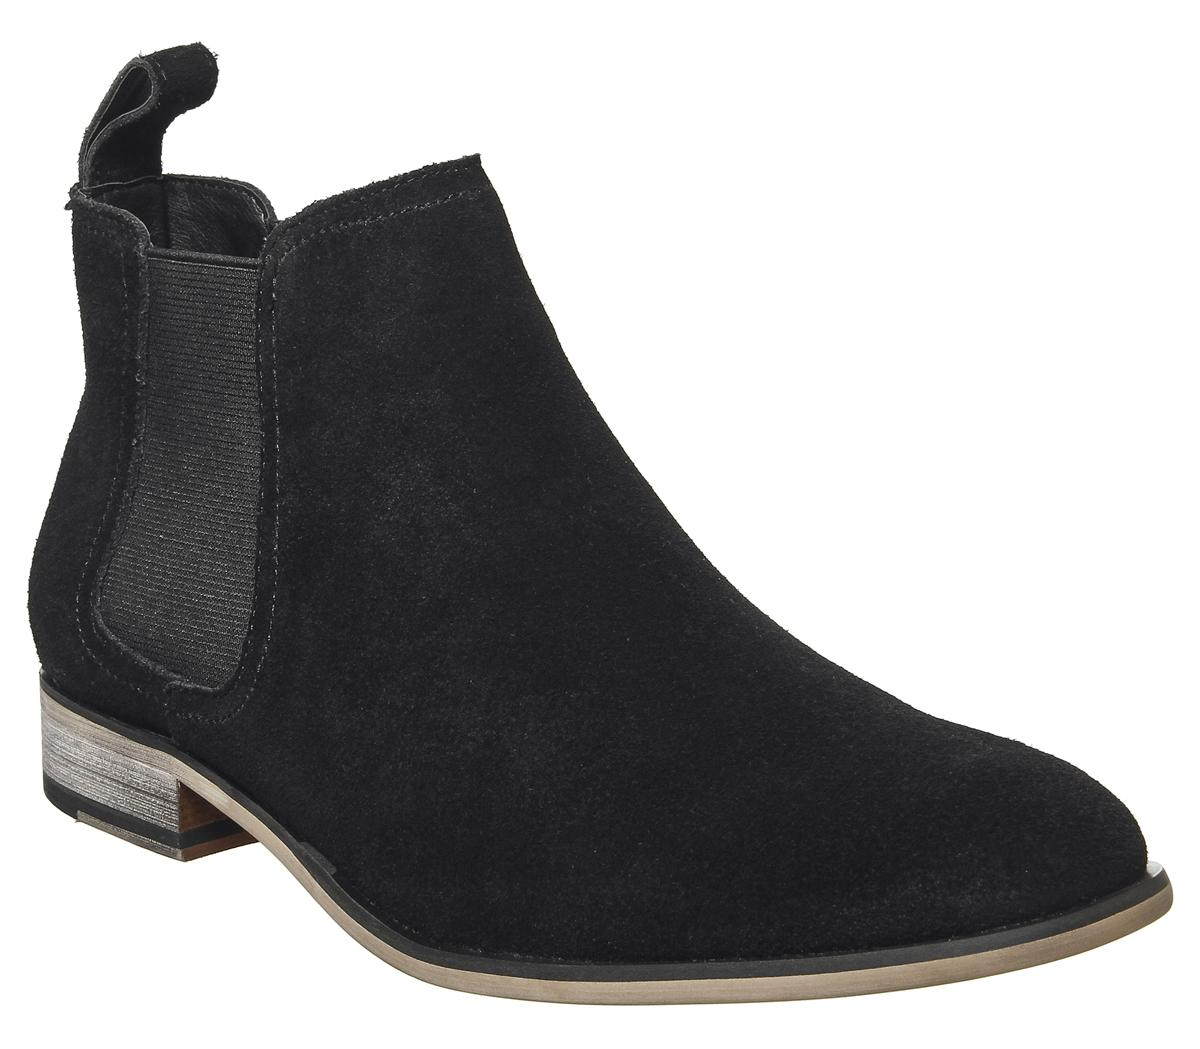 Mens Office Barkley Chelsea Boot Black Suede